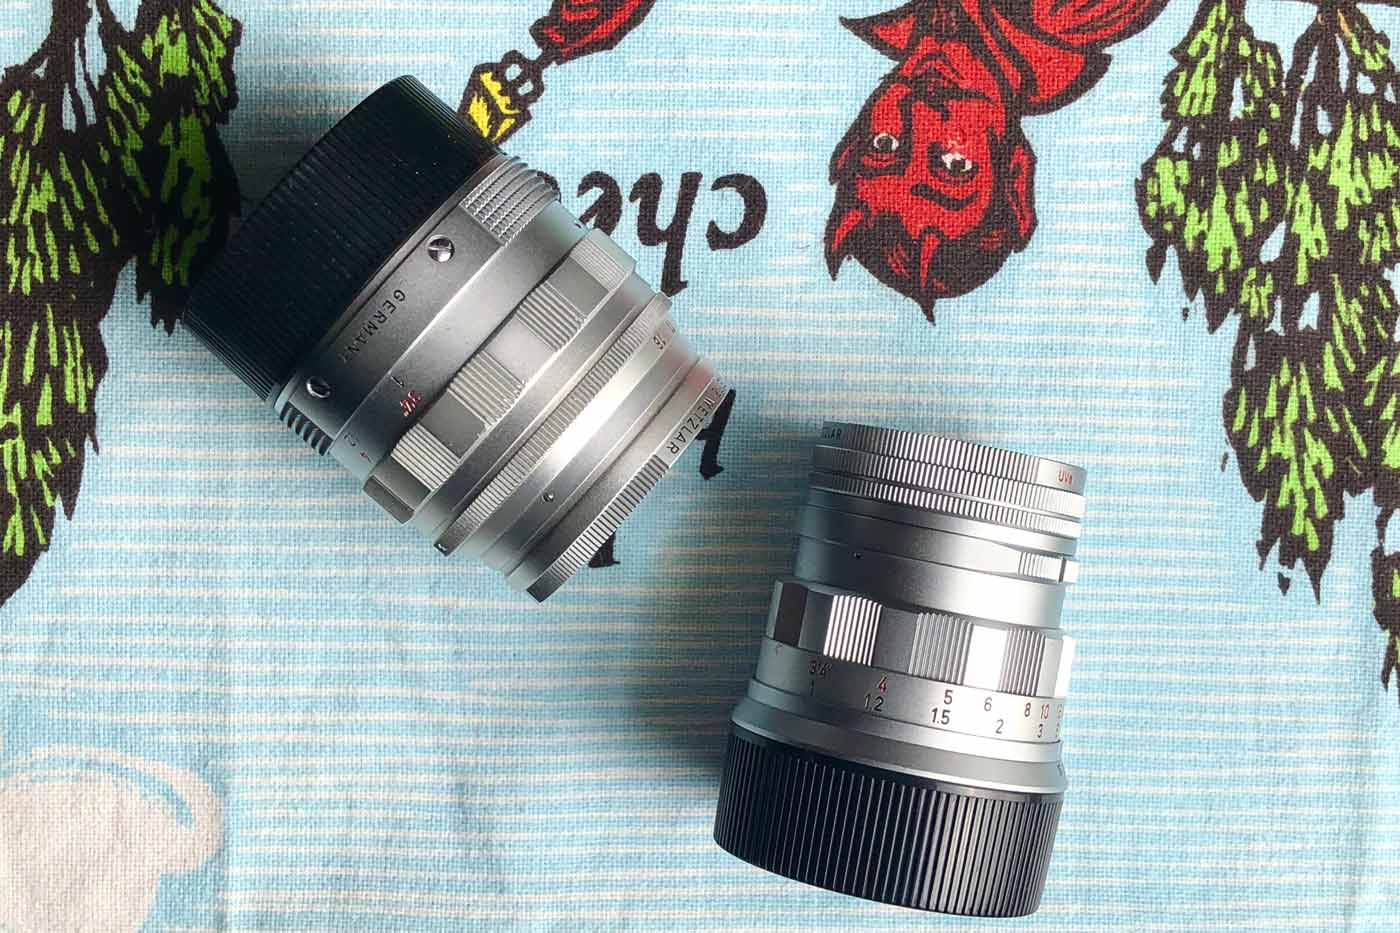 Leica-Summicron-50mm-50-f2-Rigid-Type-2-II-lens-review-compare-lens-barrle-curl-scallop-summilux-50mm-f1.4-v2-silver-chrome